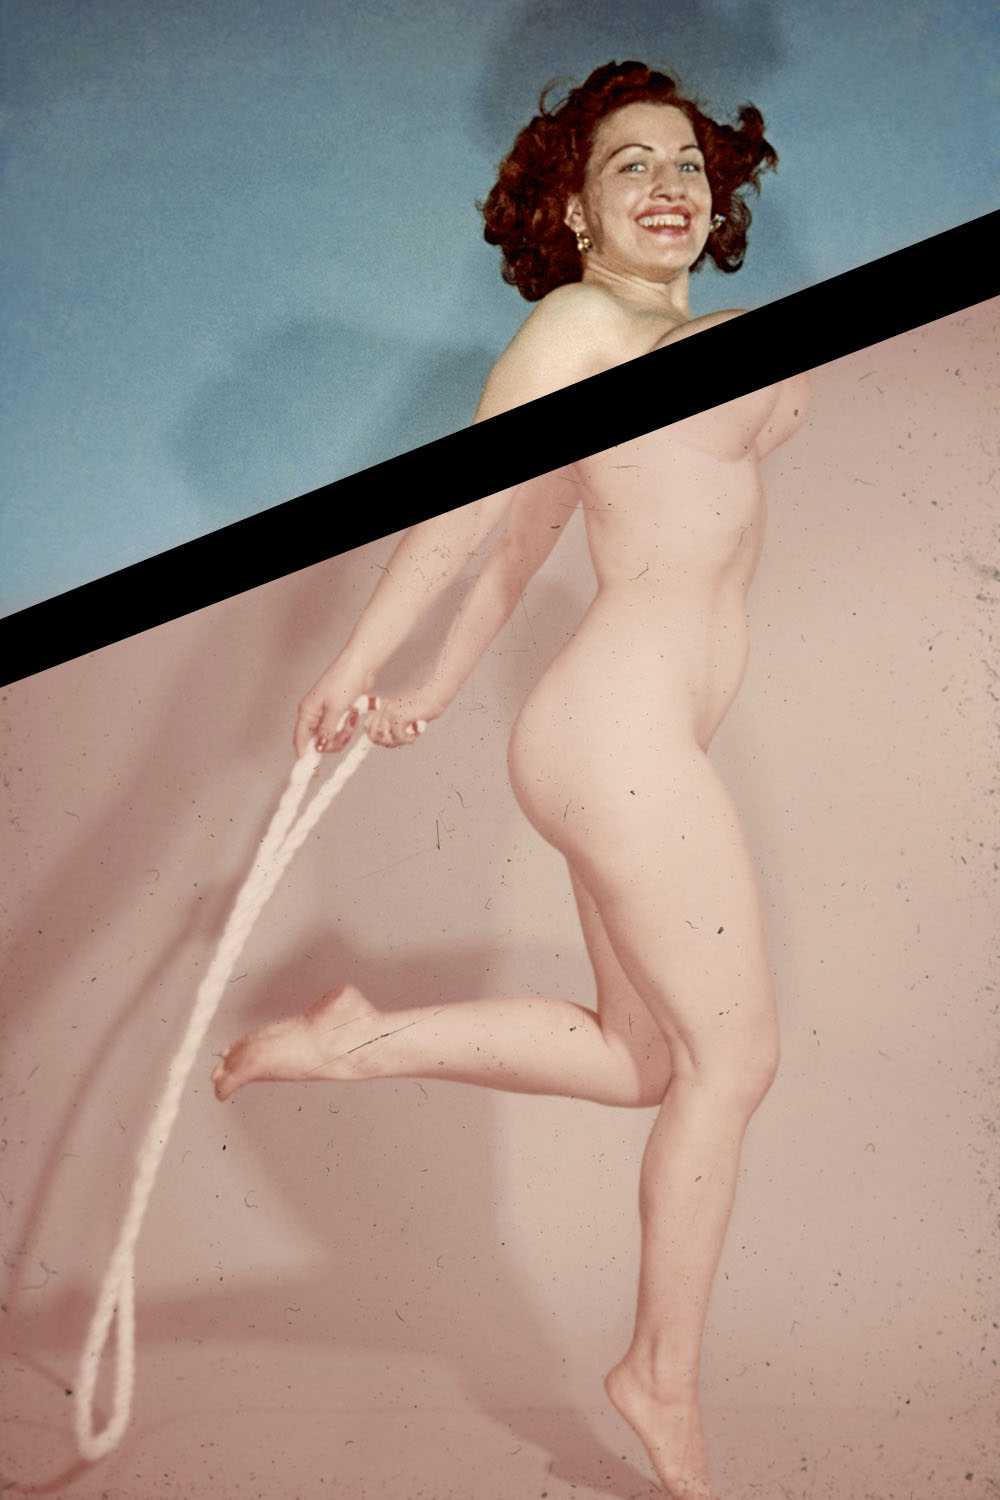 1950s-era pinup of a naked woman jumping rope.